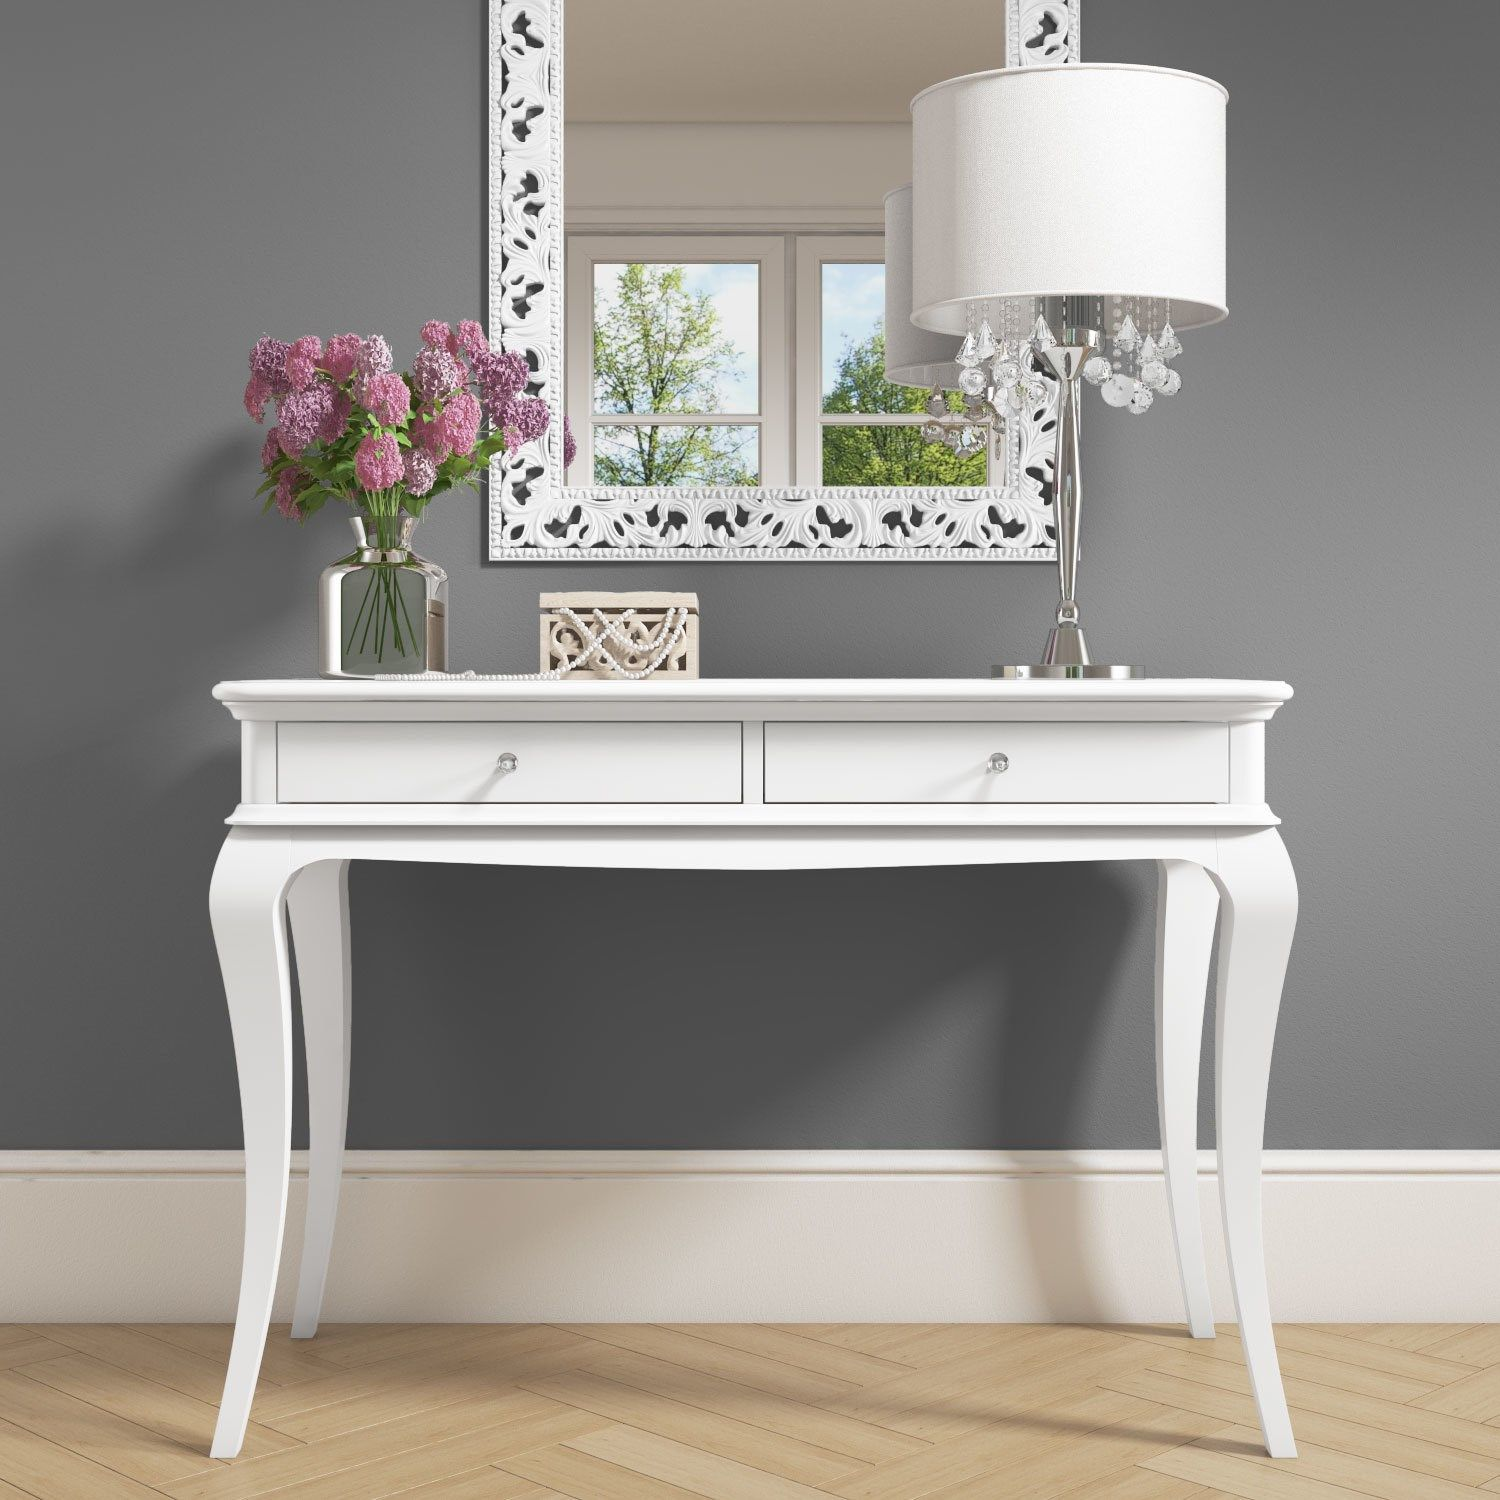 Dressing Table Idea White Dressing Table With Crystal Handles Silver Mirror And Fairy L White Dressing Tables White And Silver Bedroom Pink And Silver Bedroom